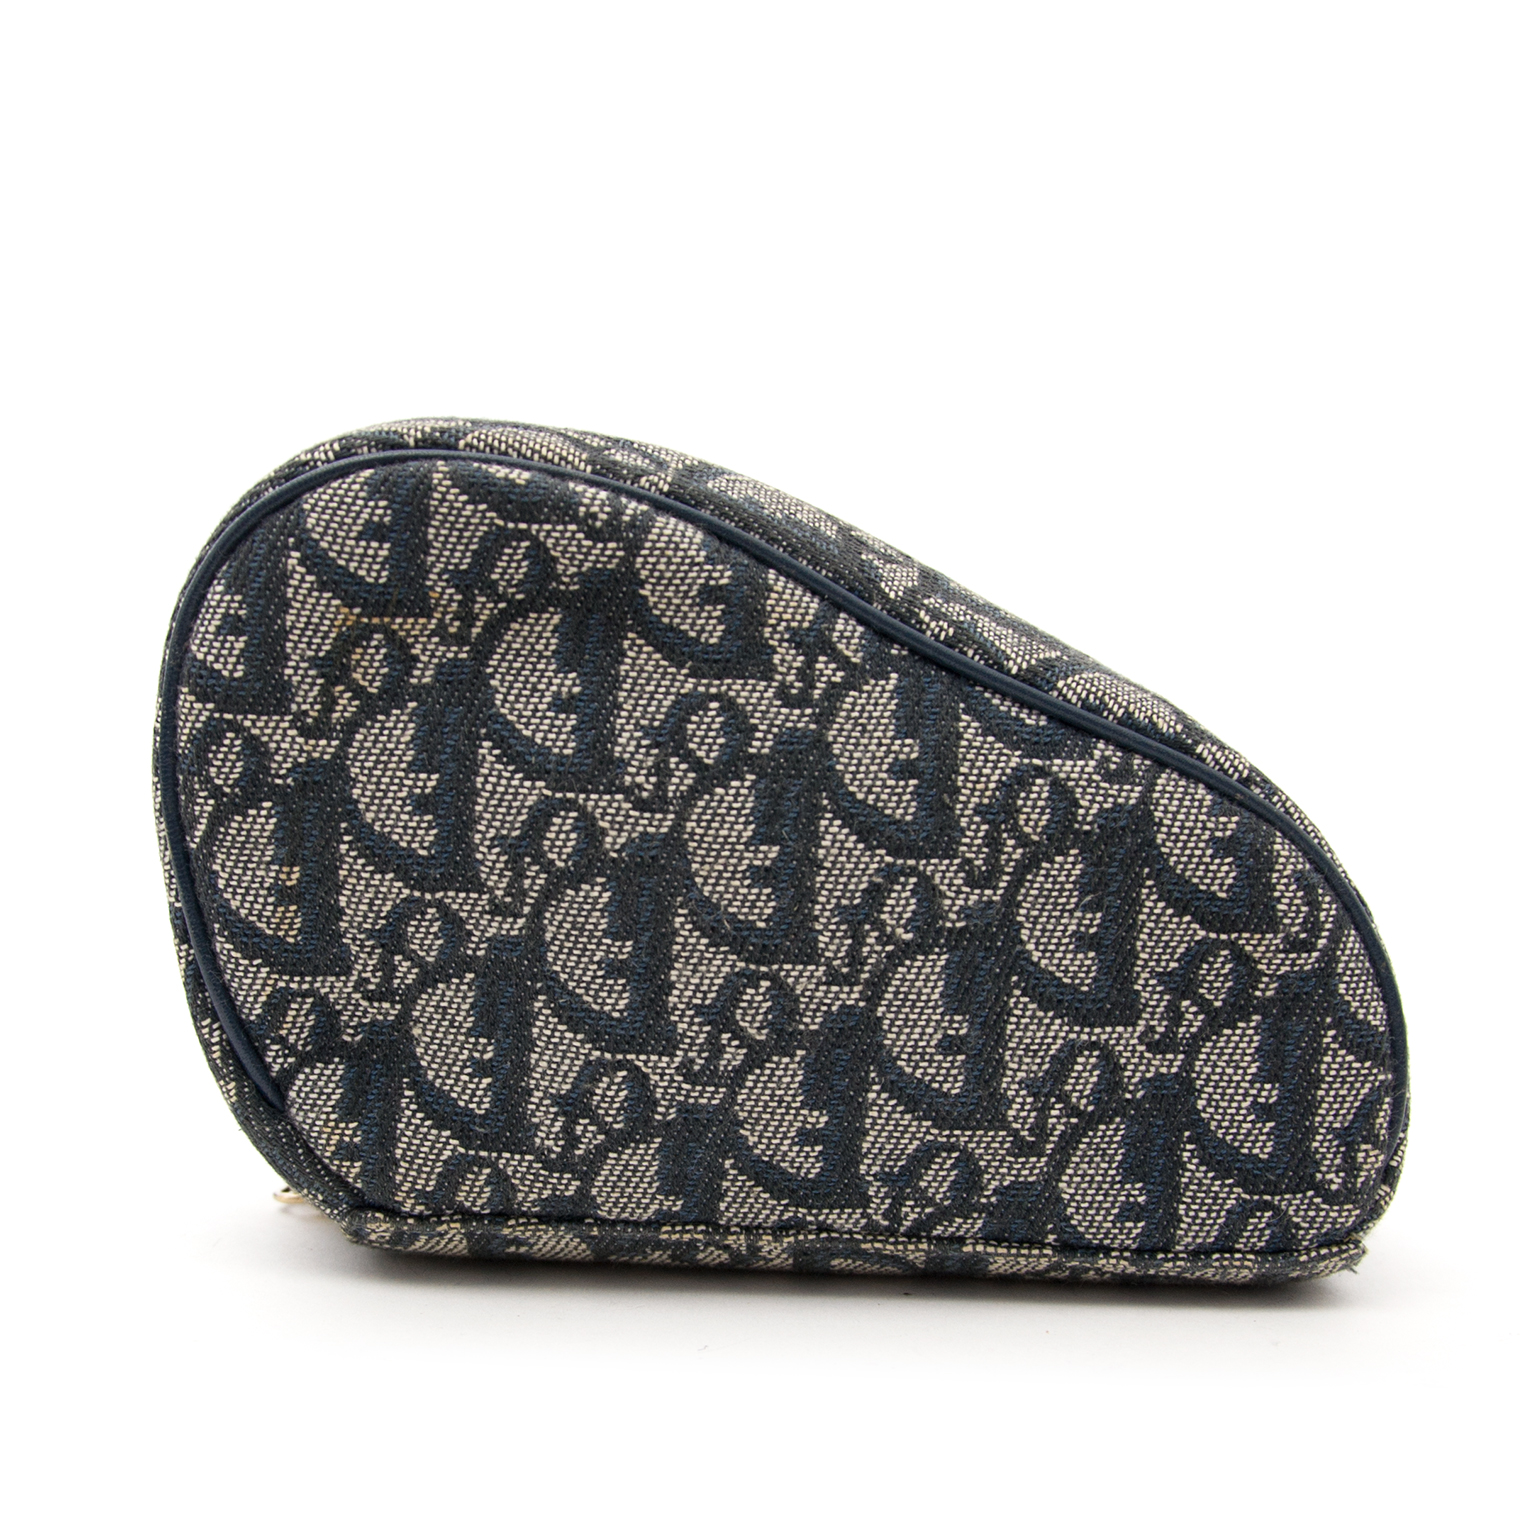 We buy and sell your secondhand luxury items and unique finds such as Dior Monogram Make-Up Pochette